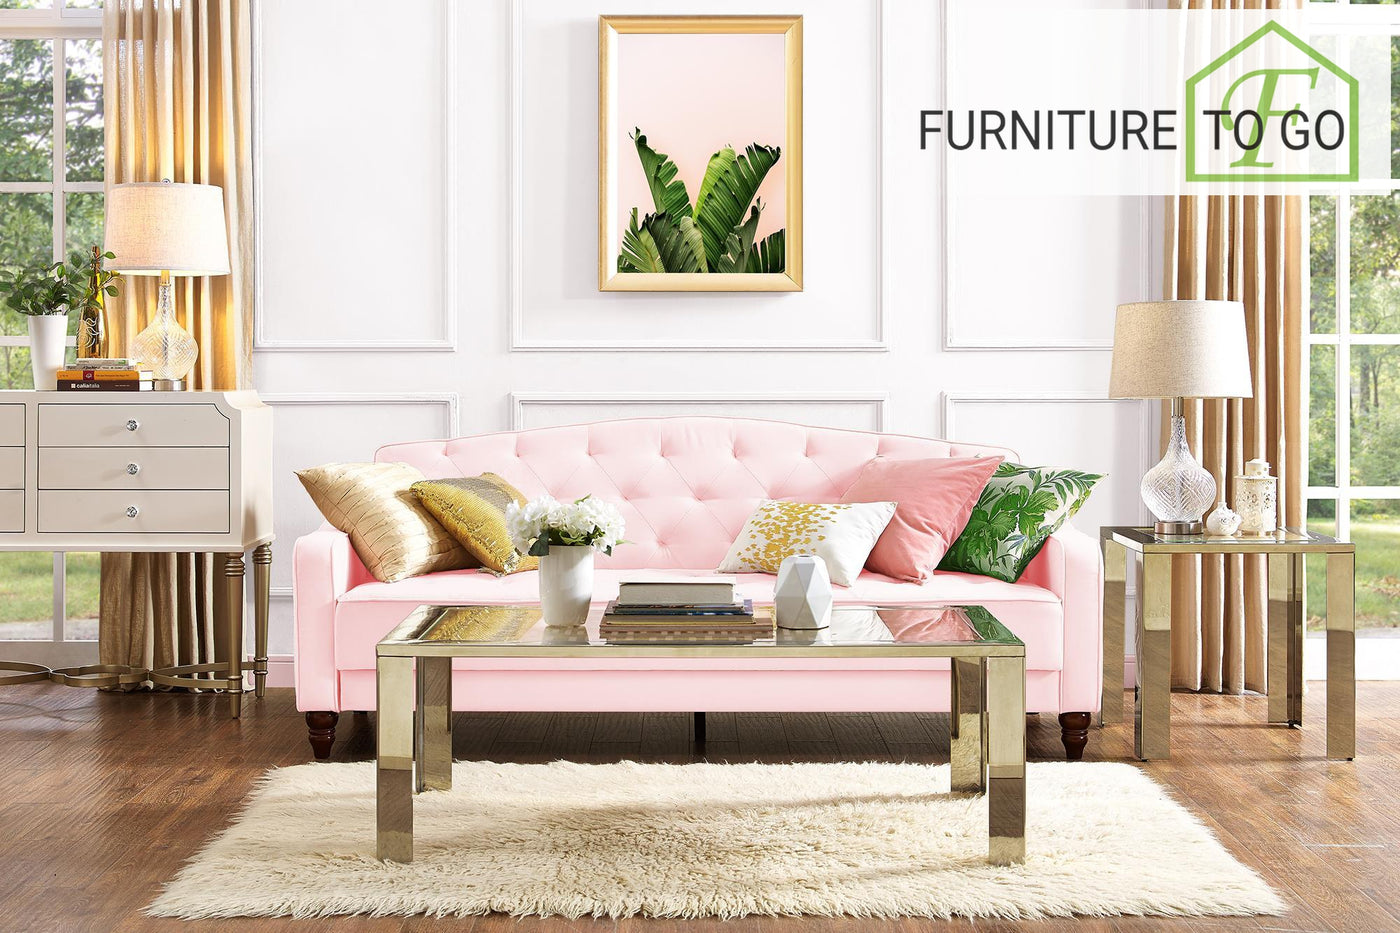 Astonishing Clearance Furniture In Dallas 249 99 Pink Velour Vintage Style Sofa Bed Futon Andrewgaddart Wooden Chair Designs For Living Room Andrewgaddartcom